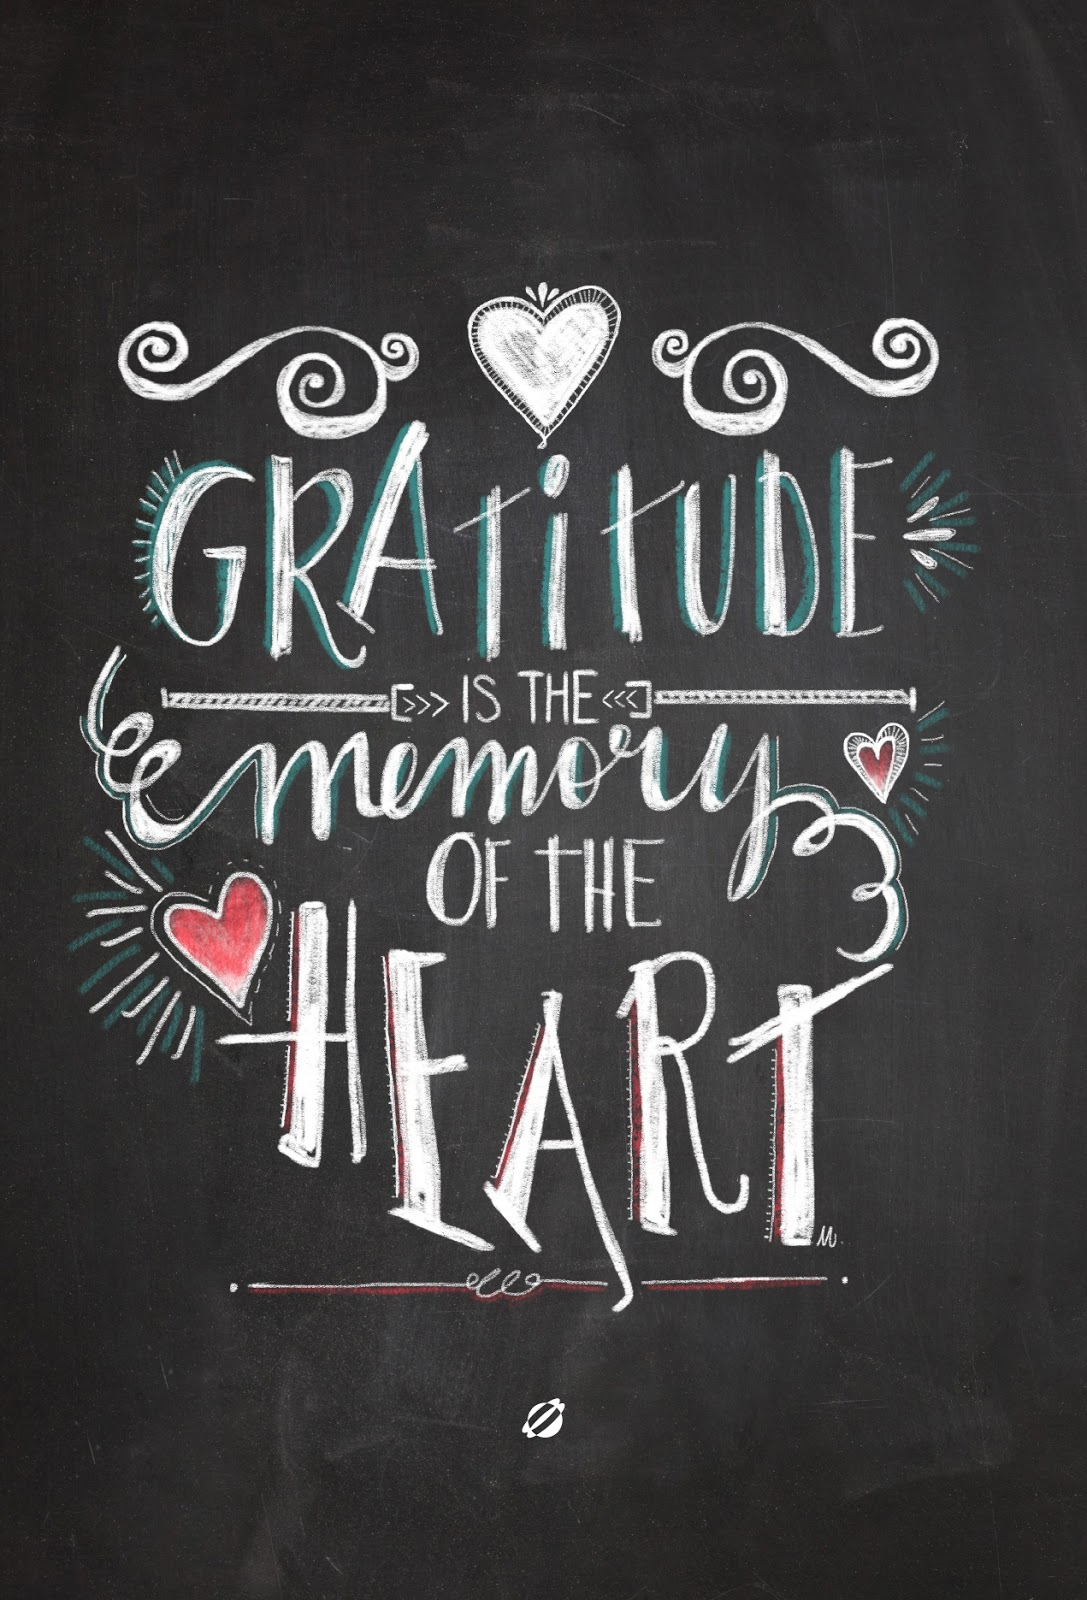 LostBumblebee ©2014- Handlettered by Melissa- Gratitude is the memory of the heart. Free Printable- Personal Use Only.